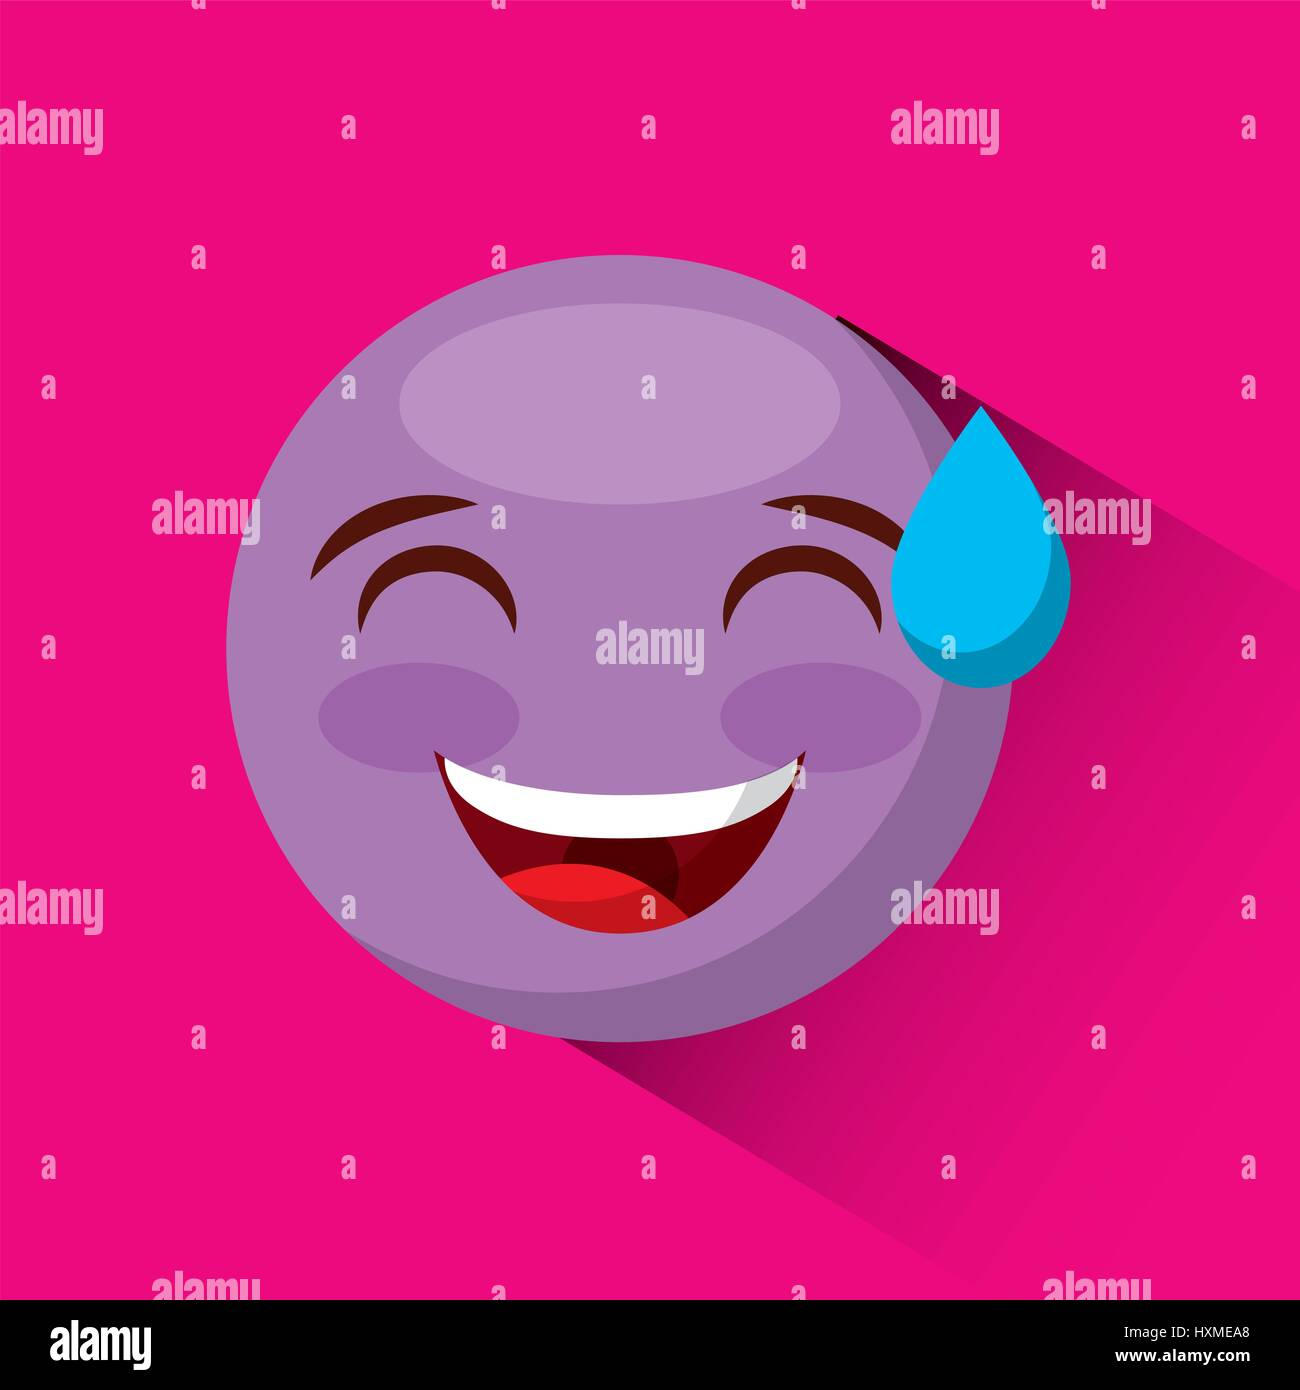 emoticon face icon - Stock Vector